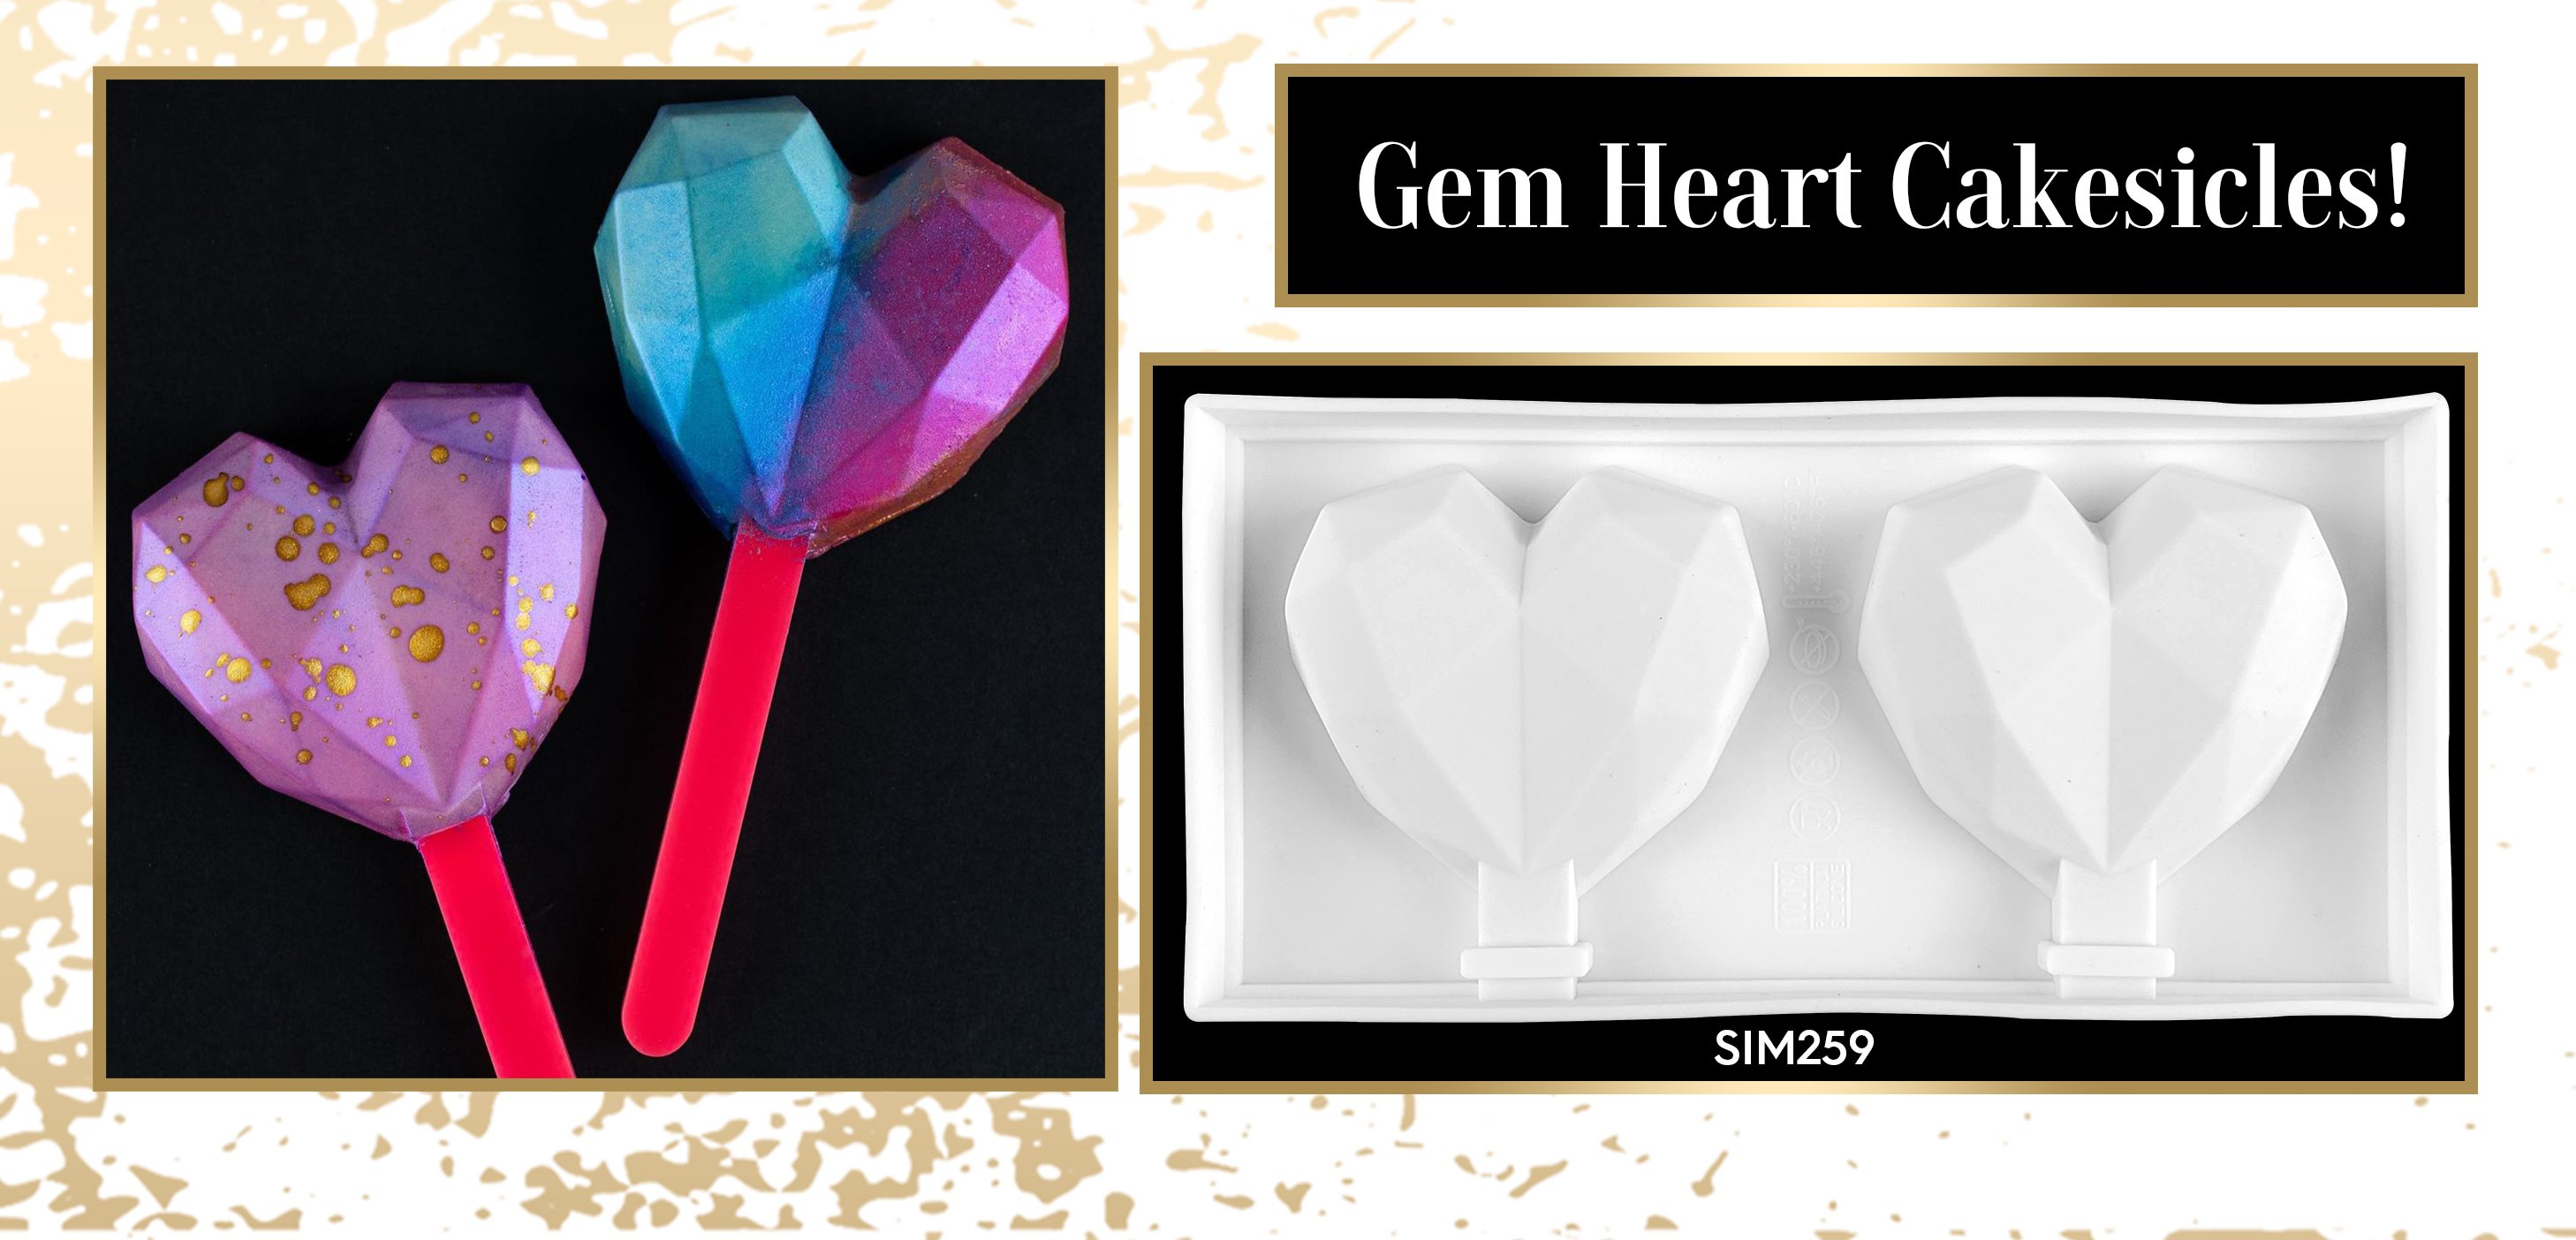 Heart Gem Cakesicles